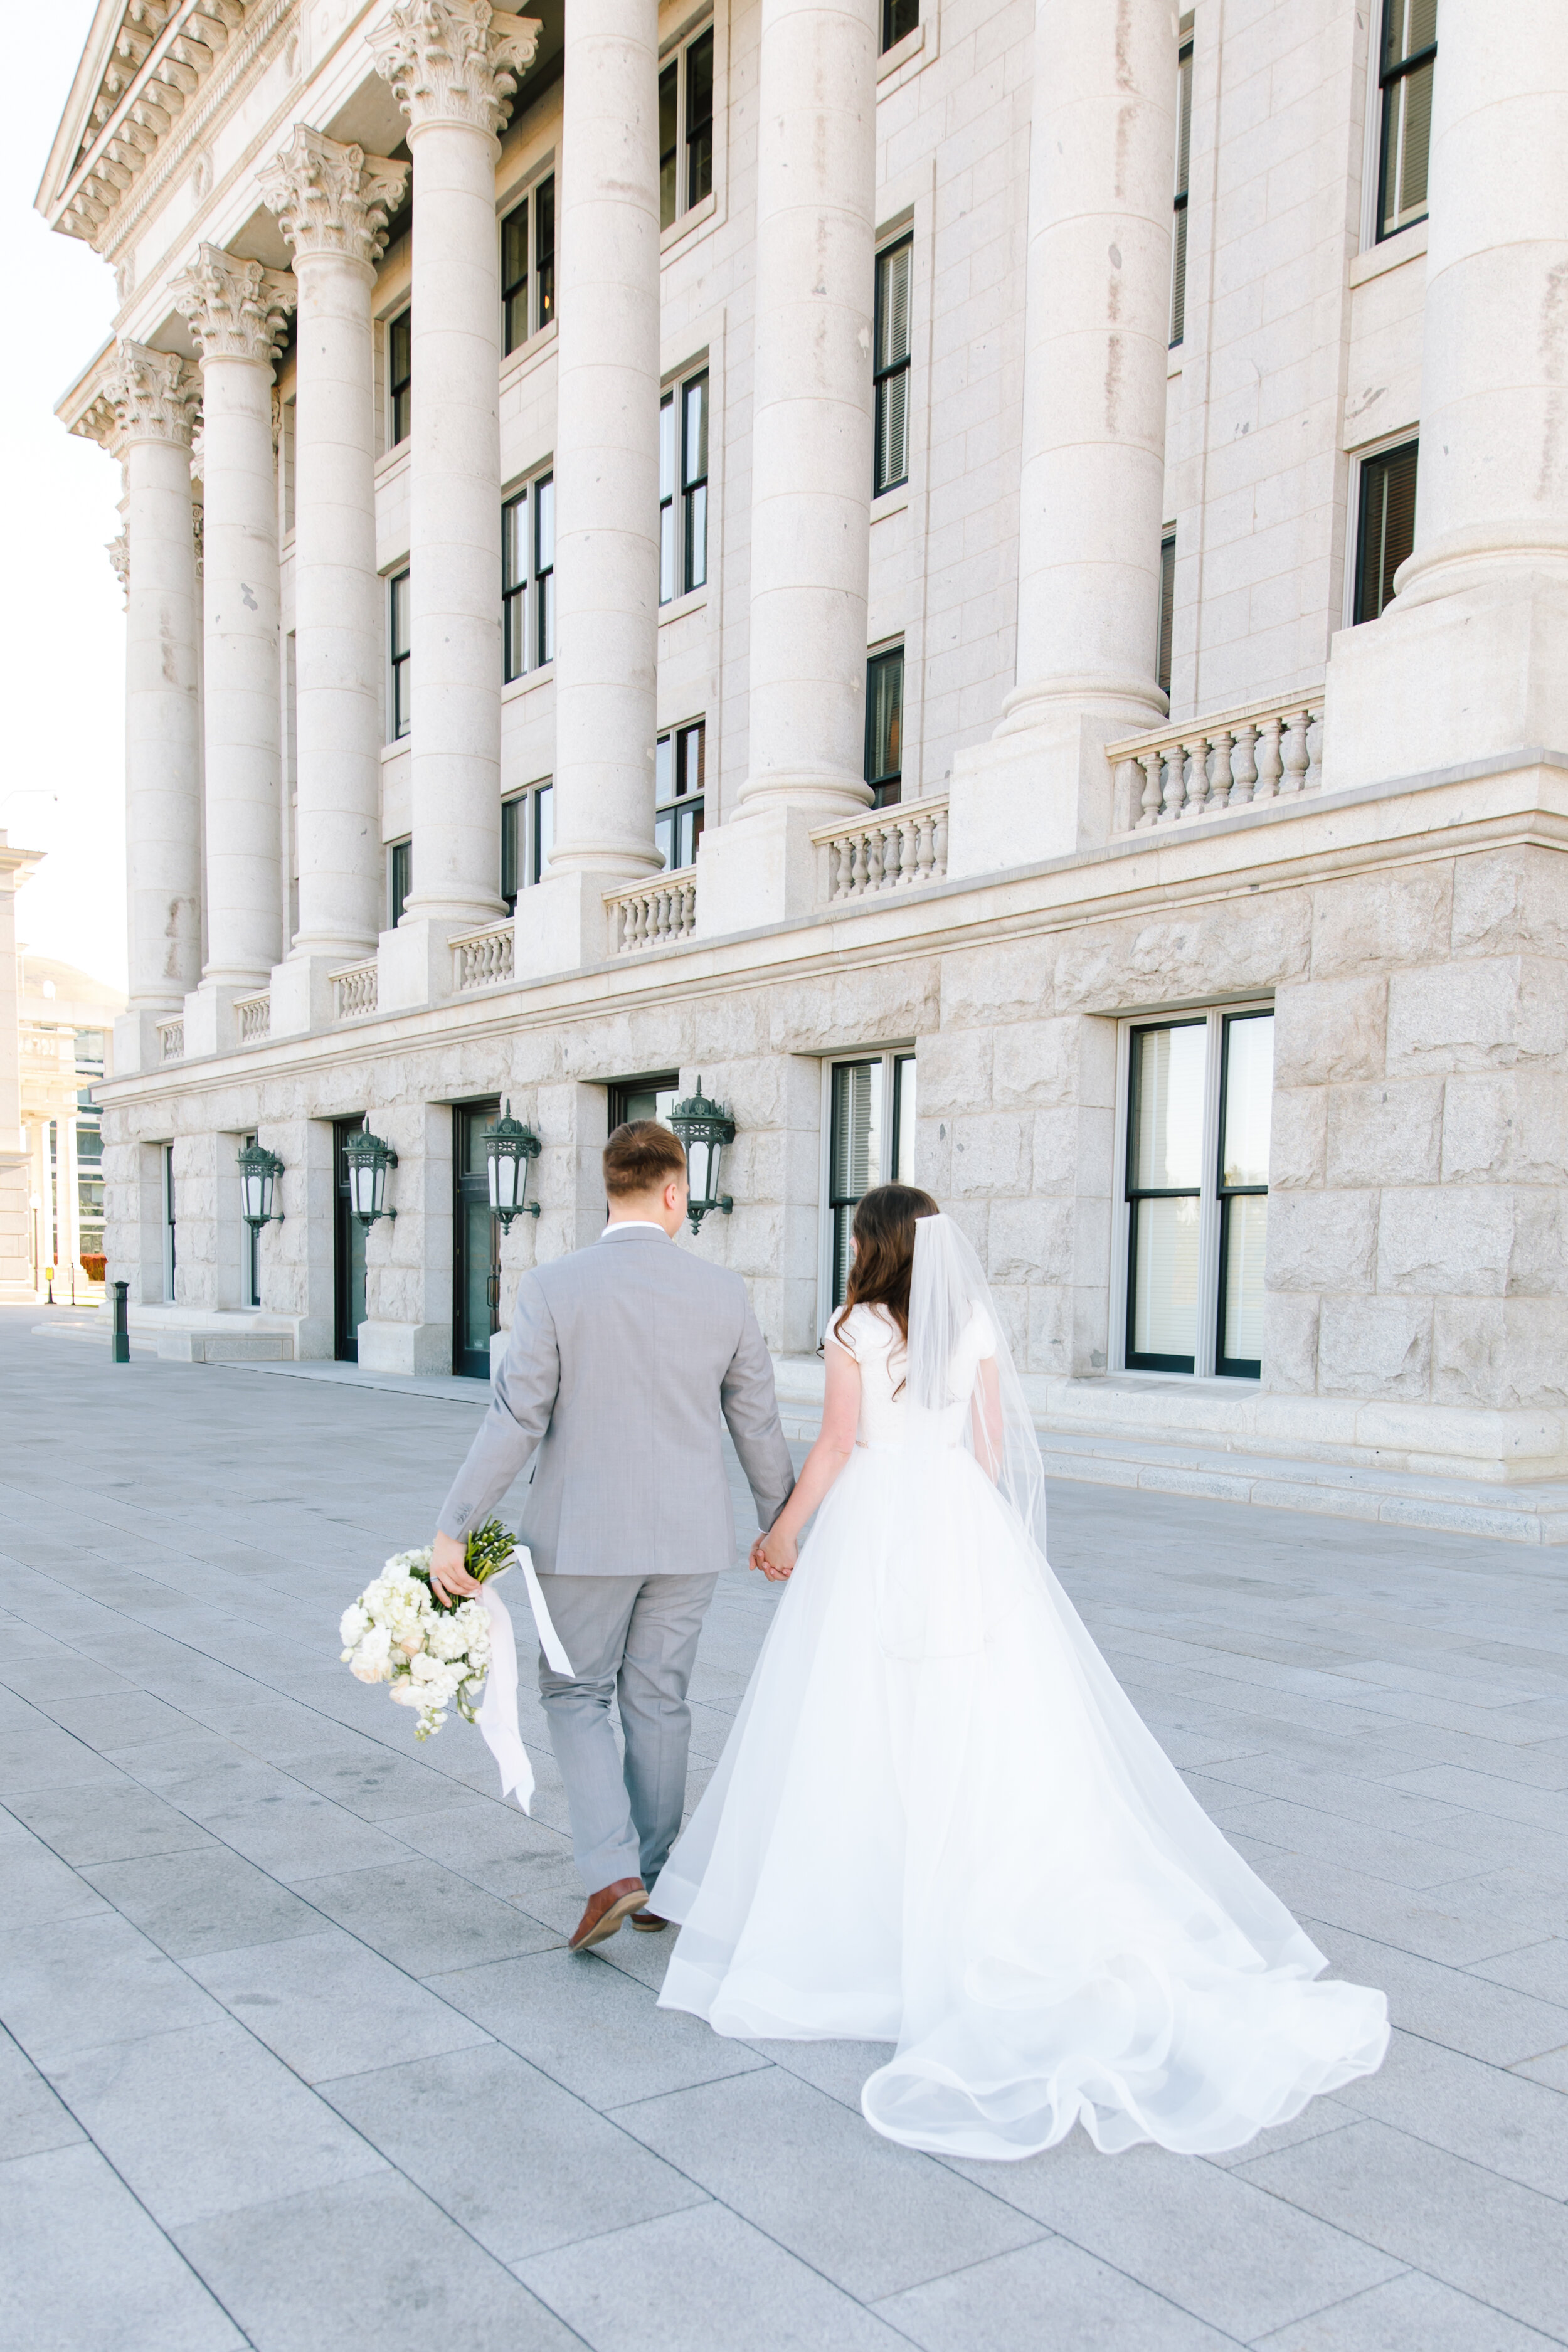 beautiful early morning summer session inspiration couple walking hand in hand beautiful capital building modes lds wedding attire lds wedding inspiration location photo shoot beautiful white glowing soft colors photo shoot inspiration photo shoot goals professional photographer #formals #saltlakecity #capitalbuilding #lovebirds #couplegoals #bridal #weddinginspo #wedding #professional #photographer